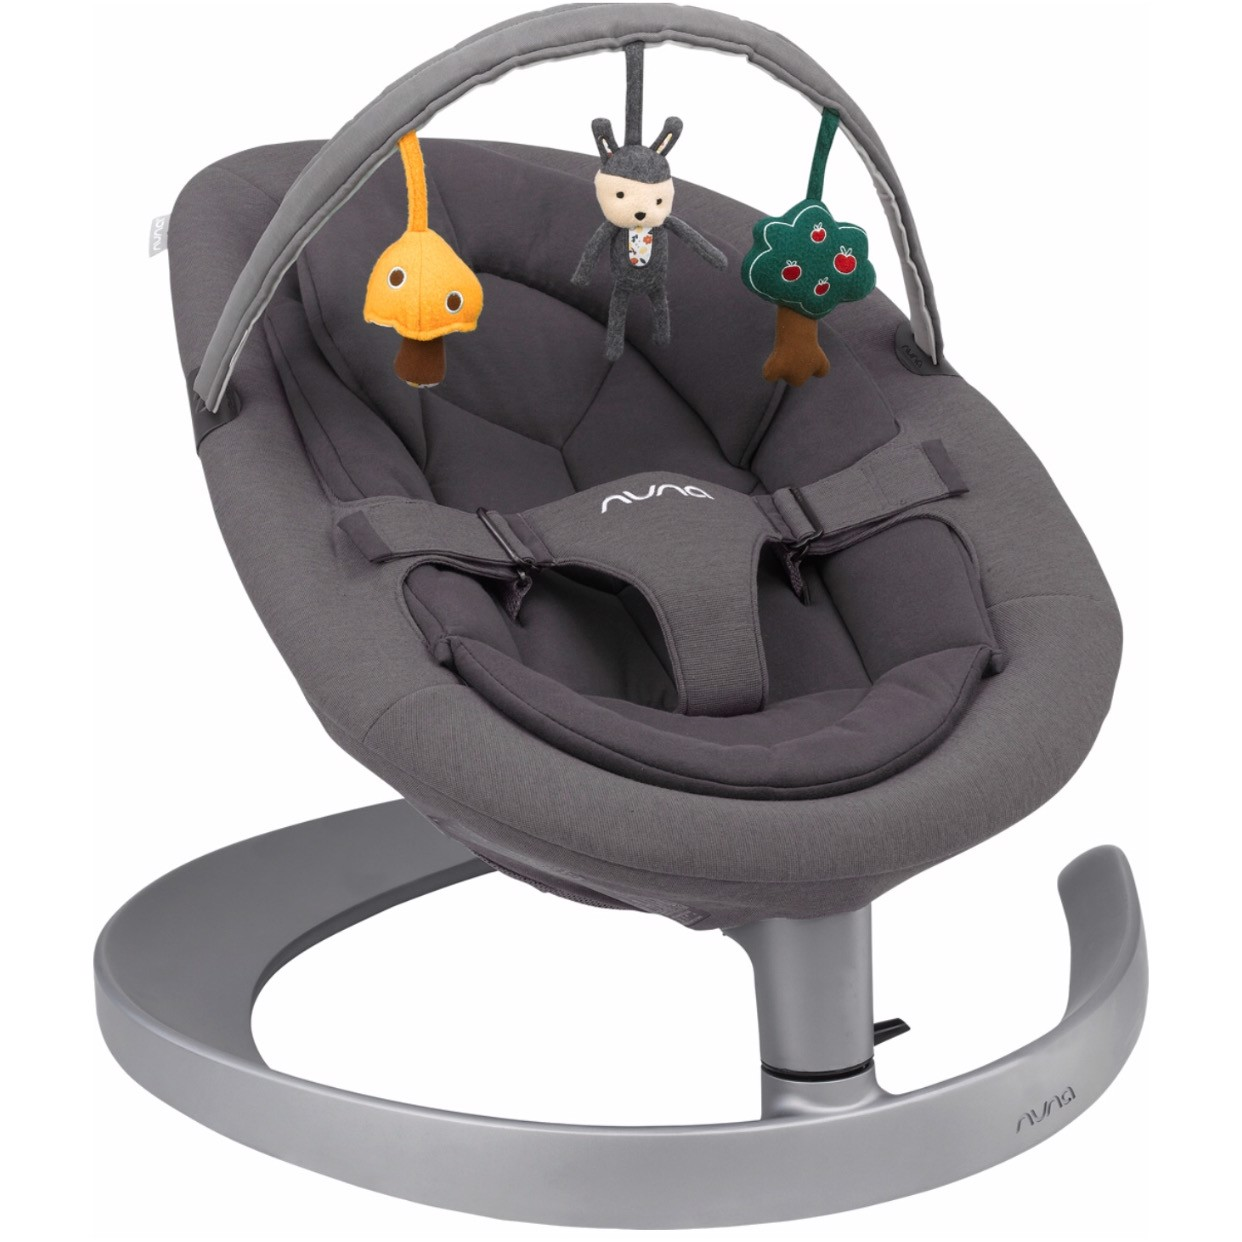 Nôi Nuna Leaf Grow Lounger Swing - Iron